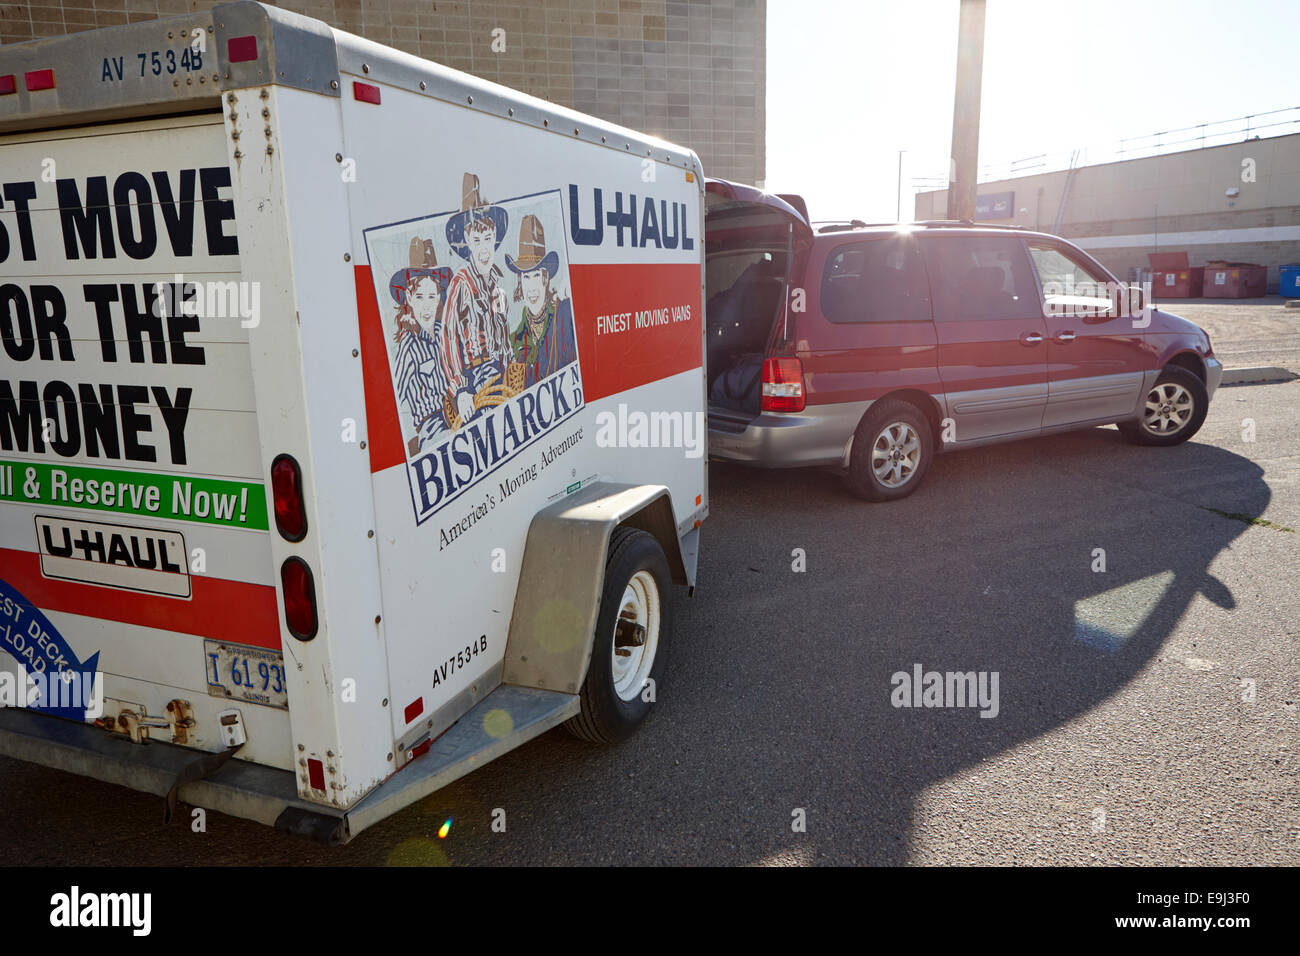 mpv van with u-haul trailer attached in Canada - Stock Image